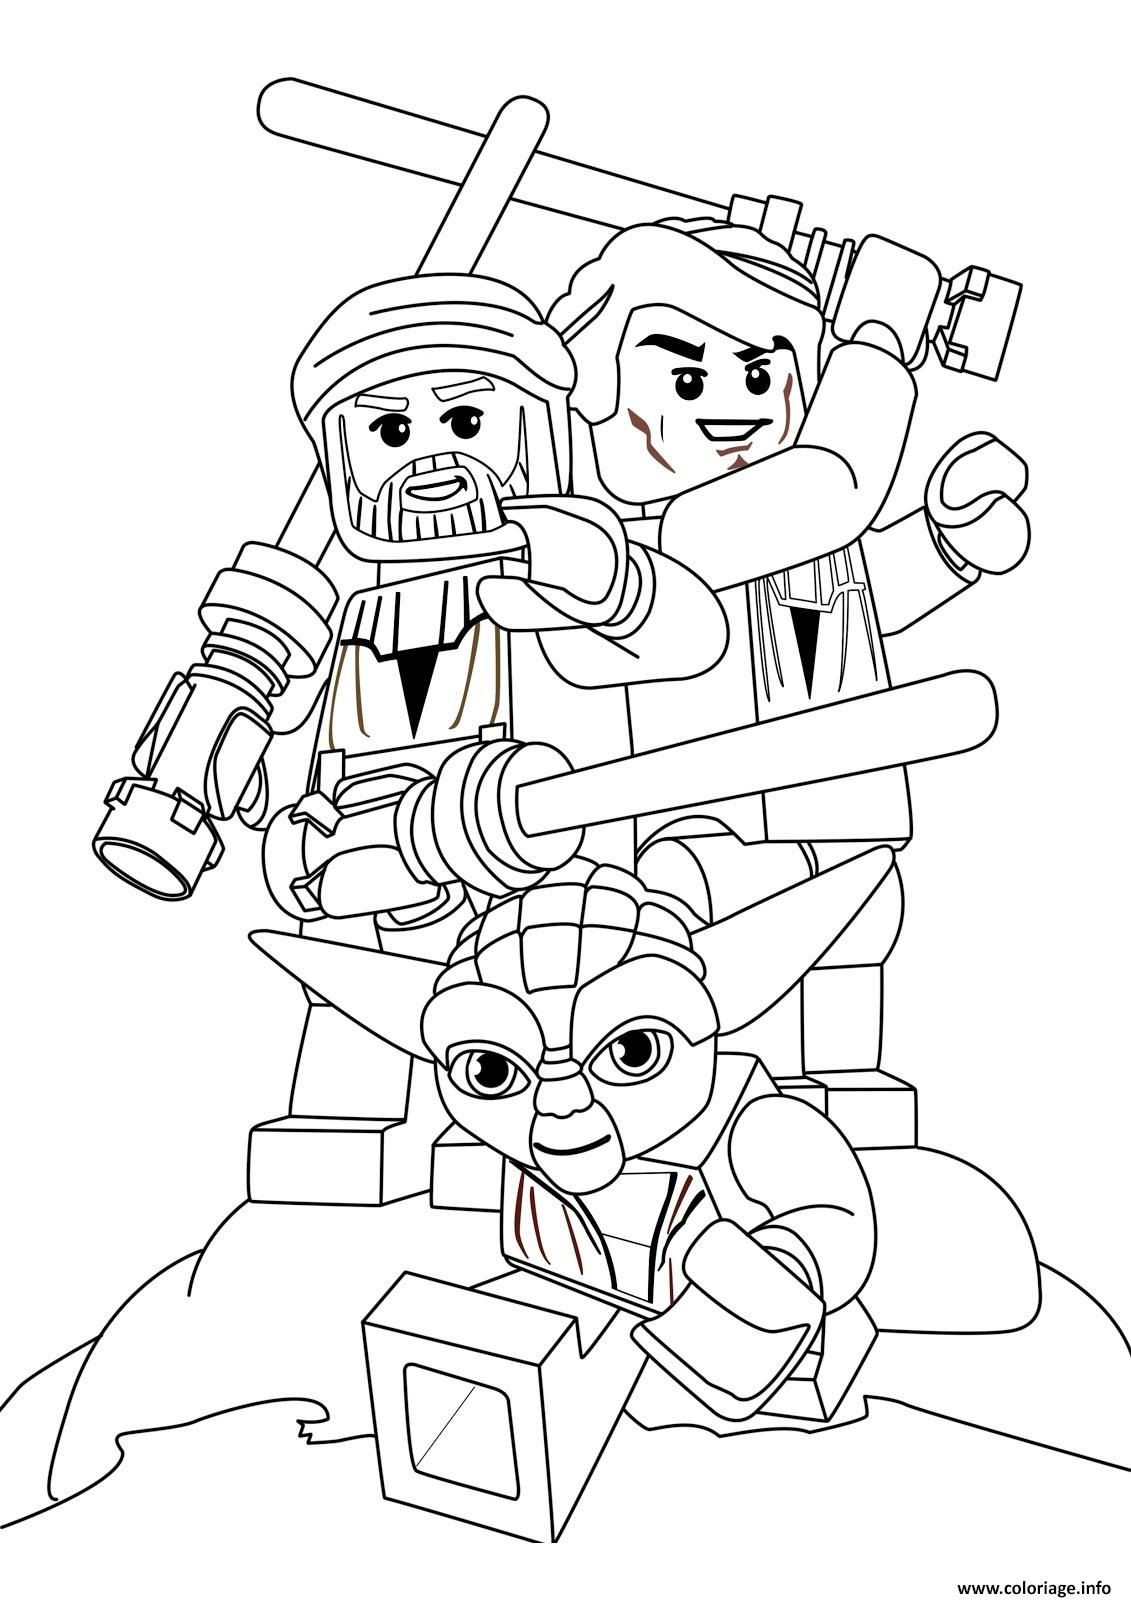 Coloriage lego star wars 78 dessin - Dessin lego star wars ...